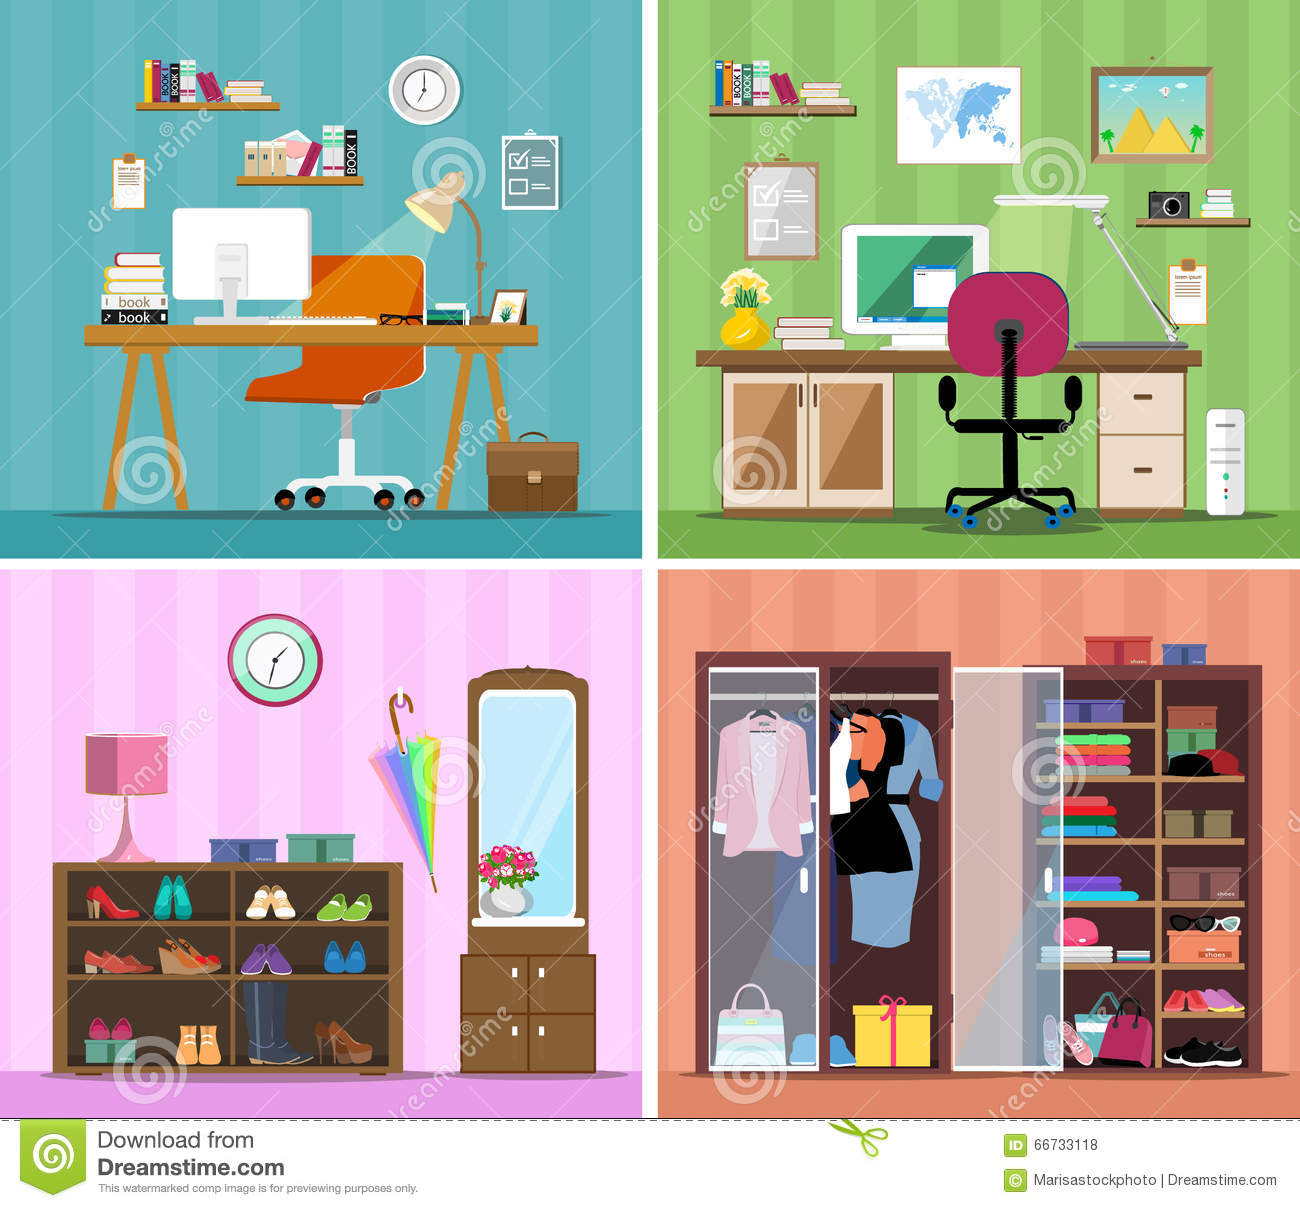 No Rooms Colorful Furniture: Set Of Colorful Vector Interior Design House Rooms With